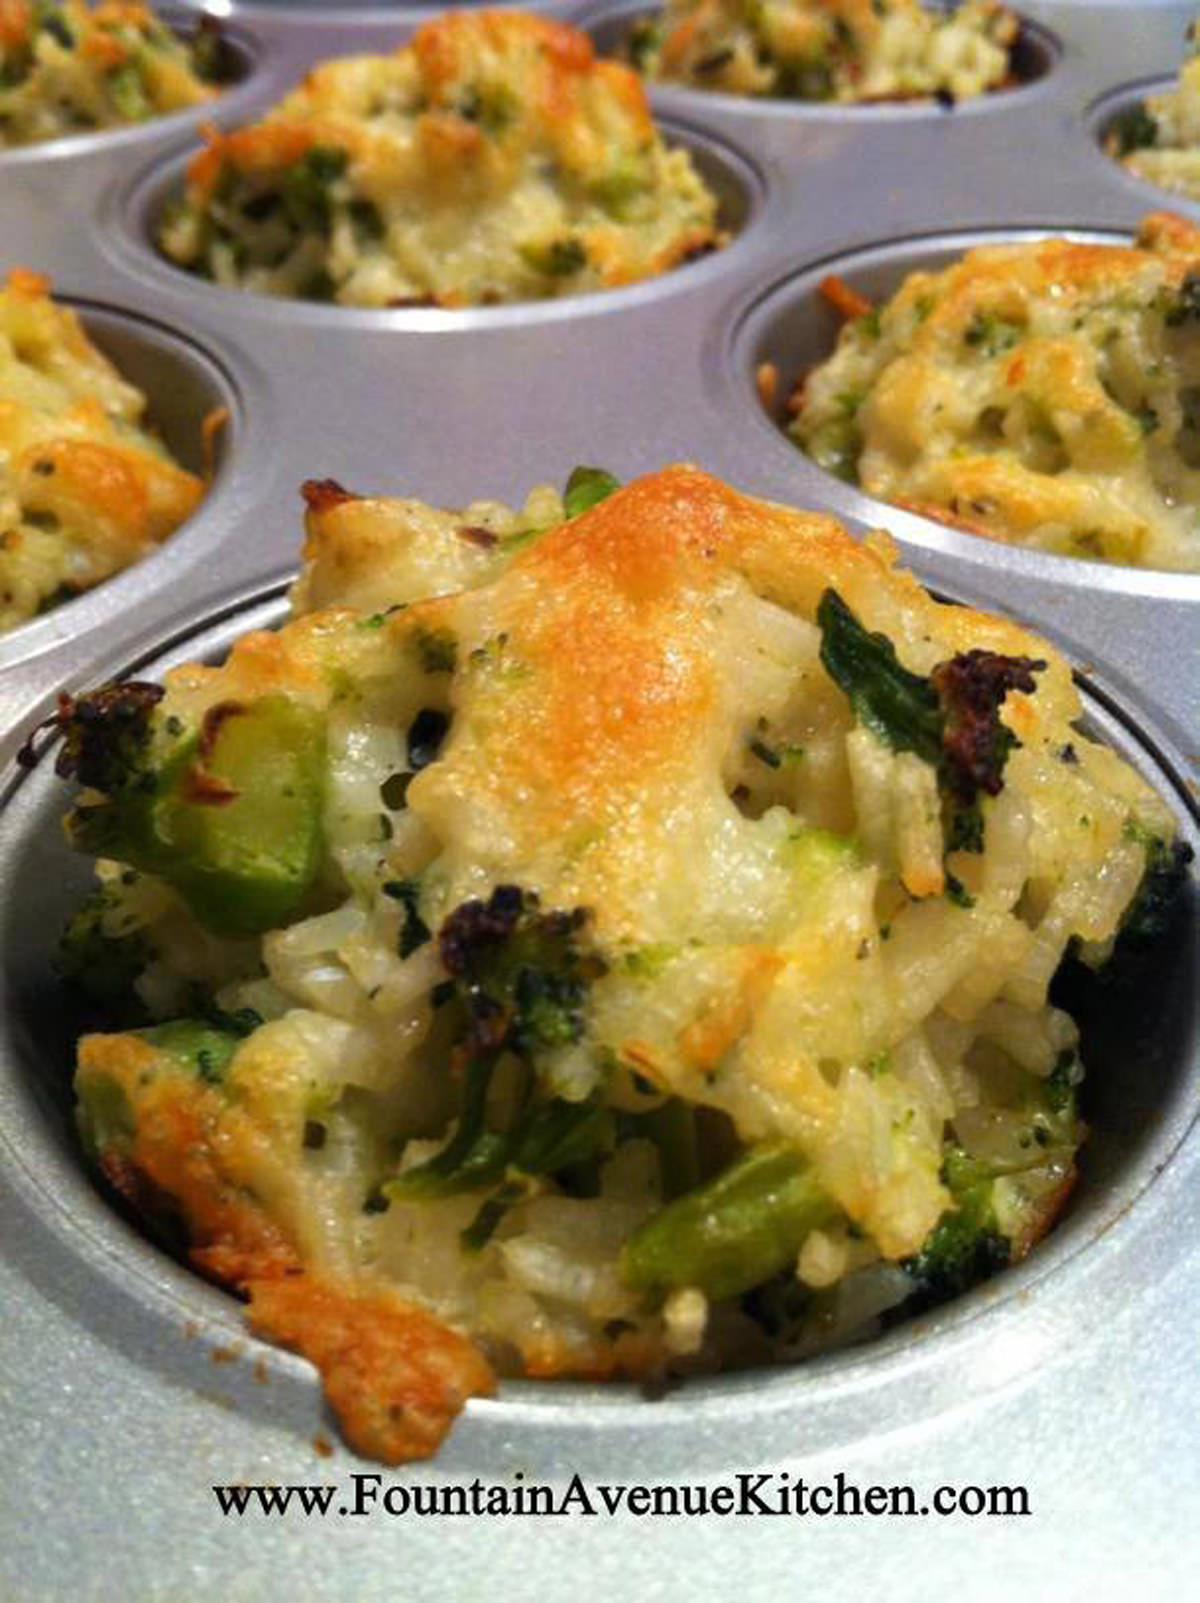 Food - Recipes - Slow Cookers - Baking - Favourite Dishes - Page 5 Cheddar-Broccoli-Cups